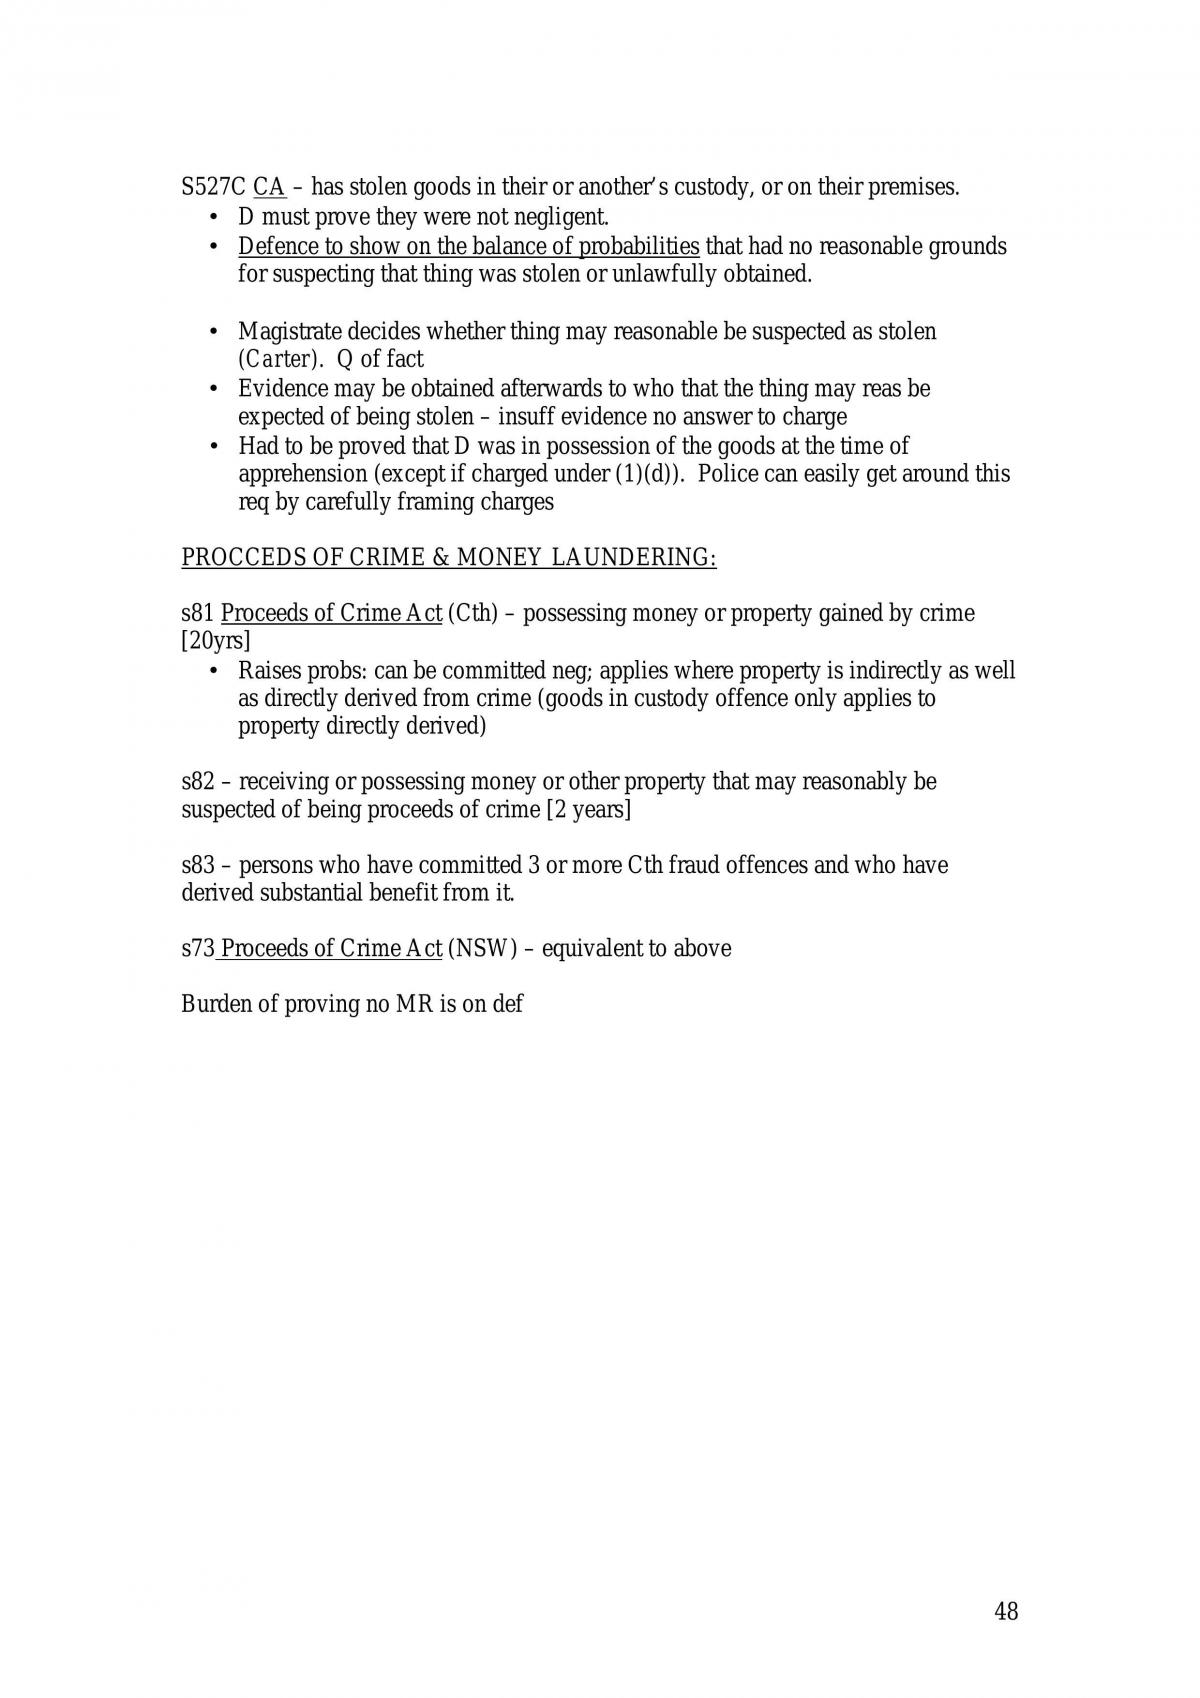 Crim Law 1 - Some Good Notes - Page 48